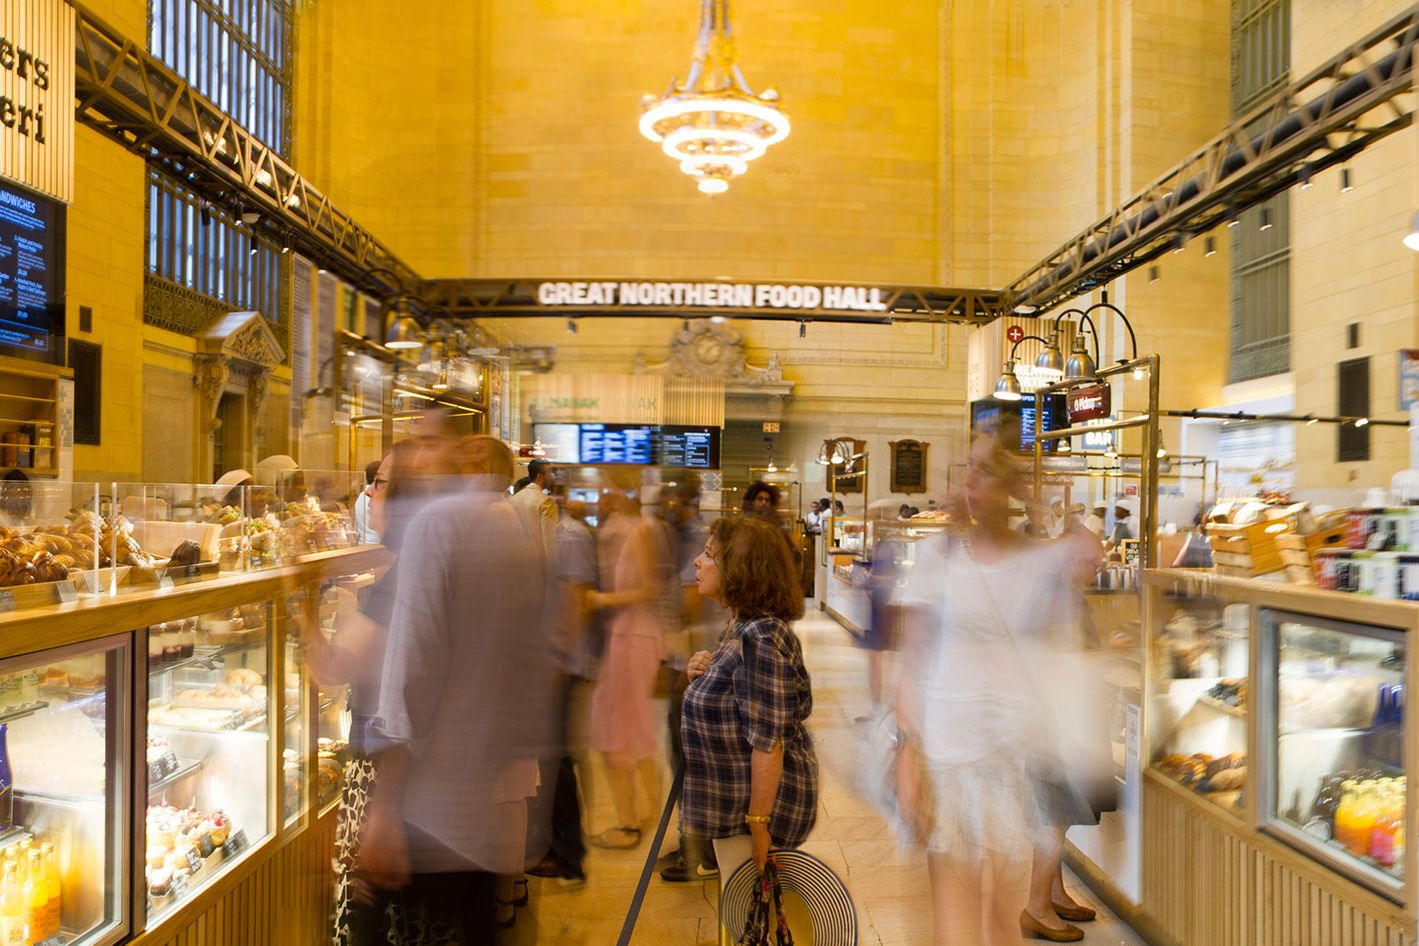 Great Northern Food Hall new york restaurant review: great northern food hall